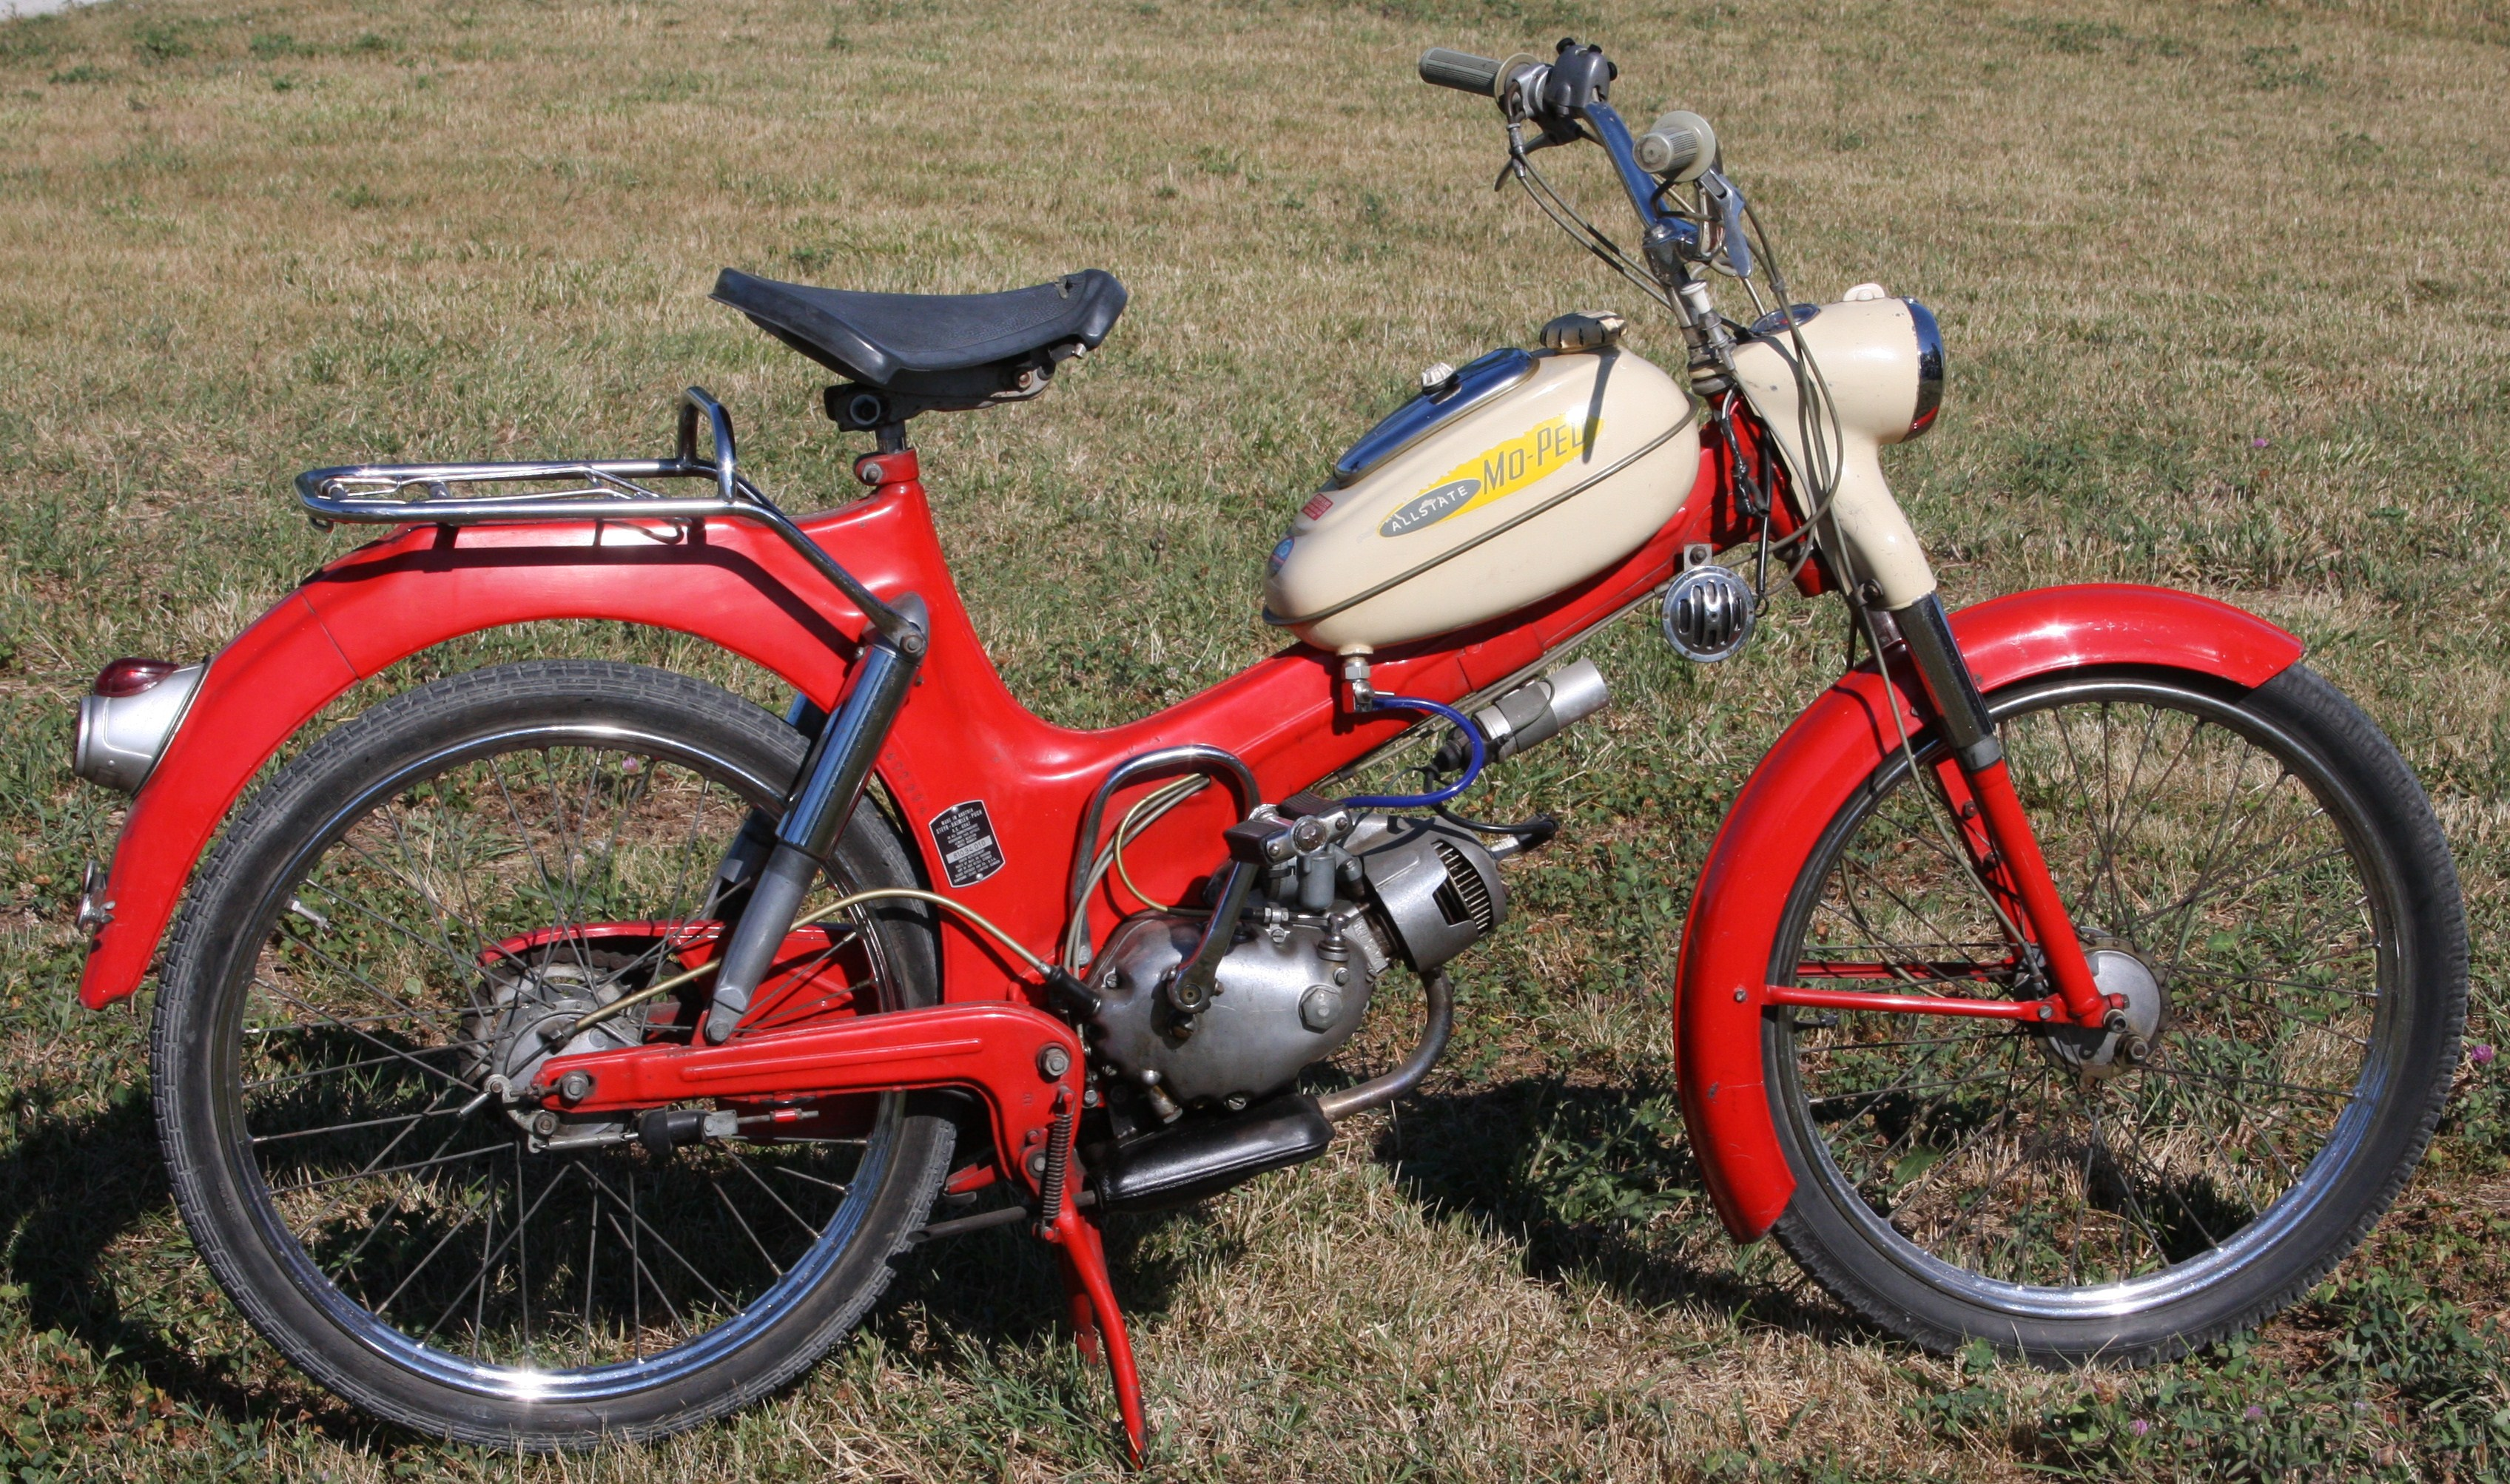 Puch MS50 for sale — Moped Army